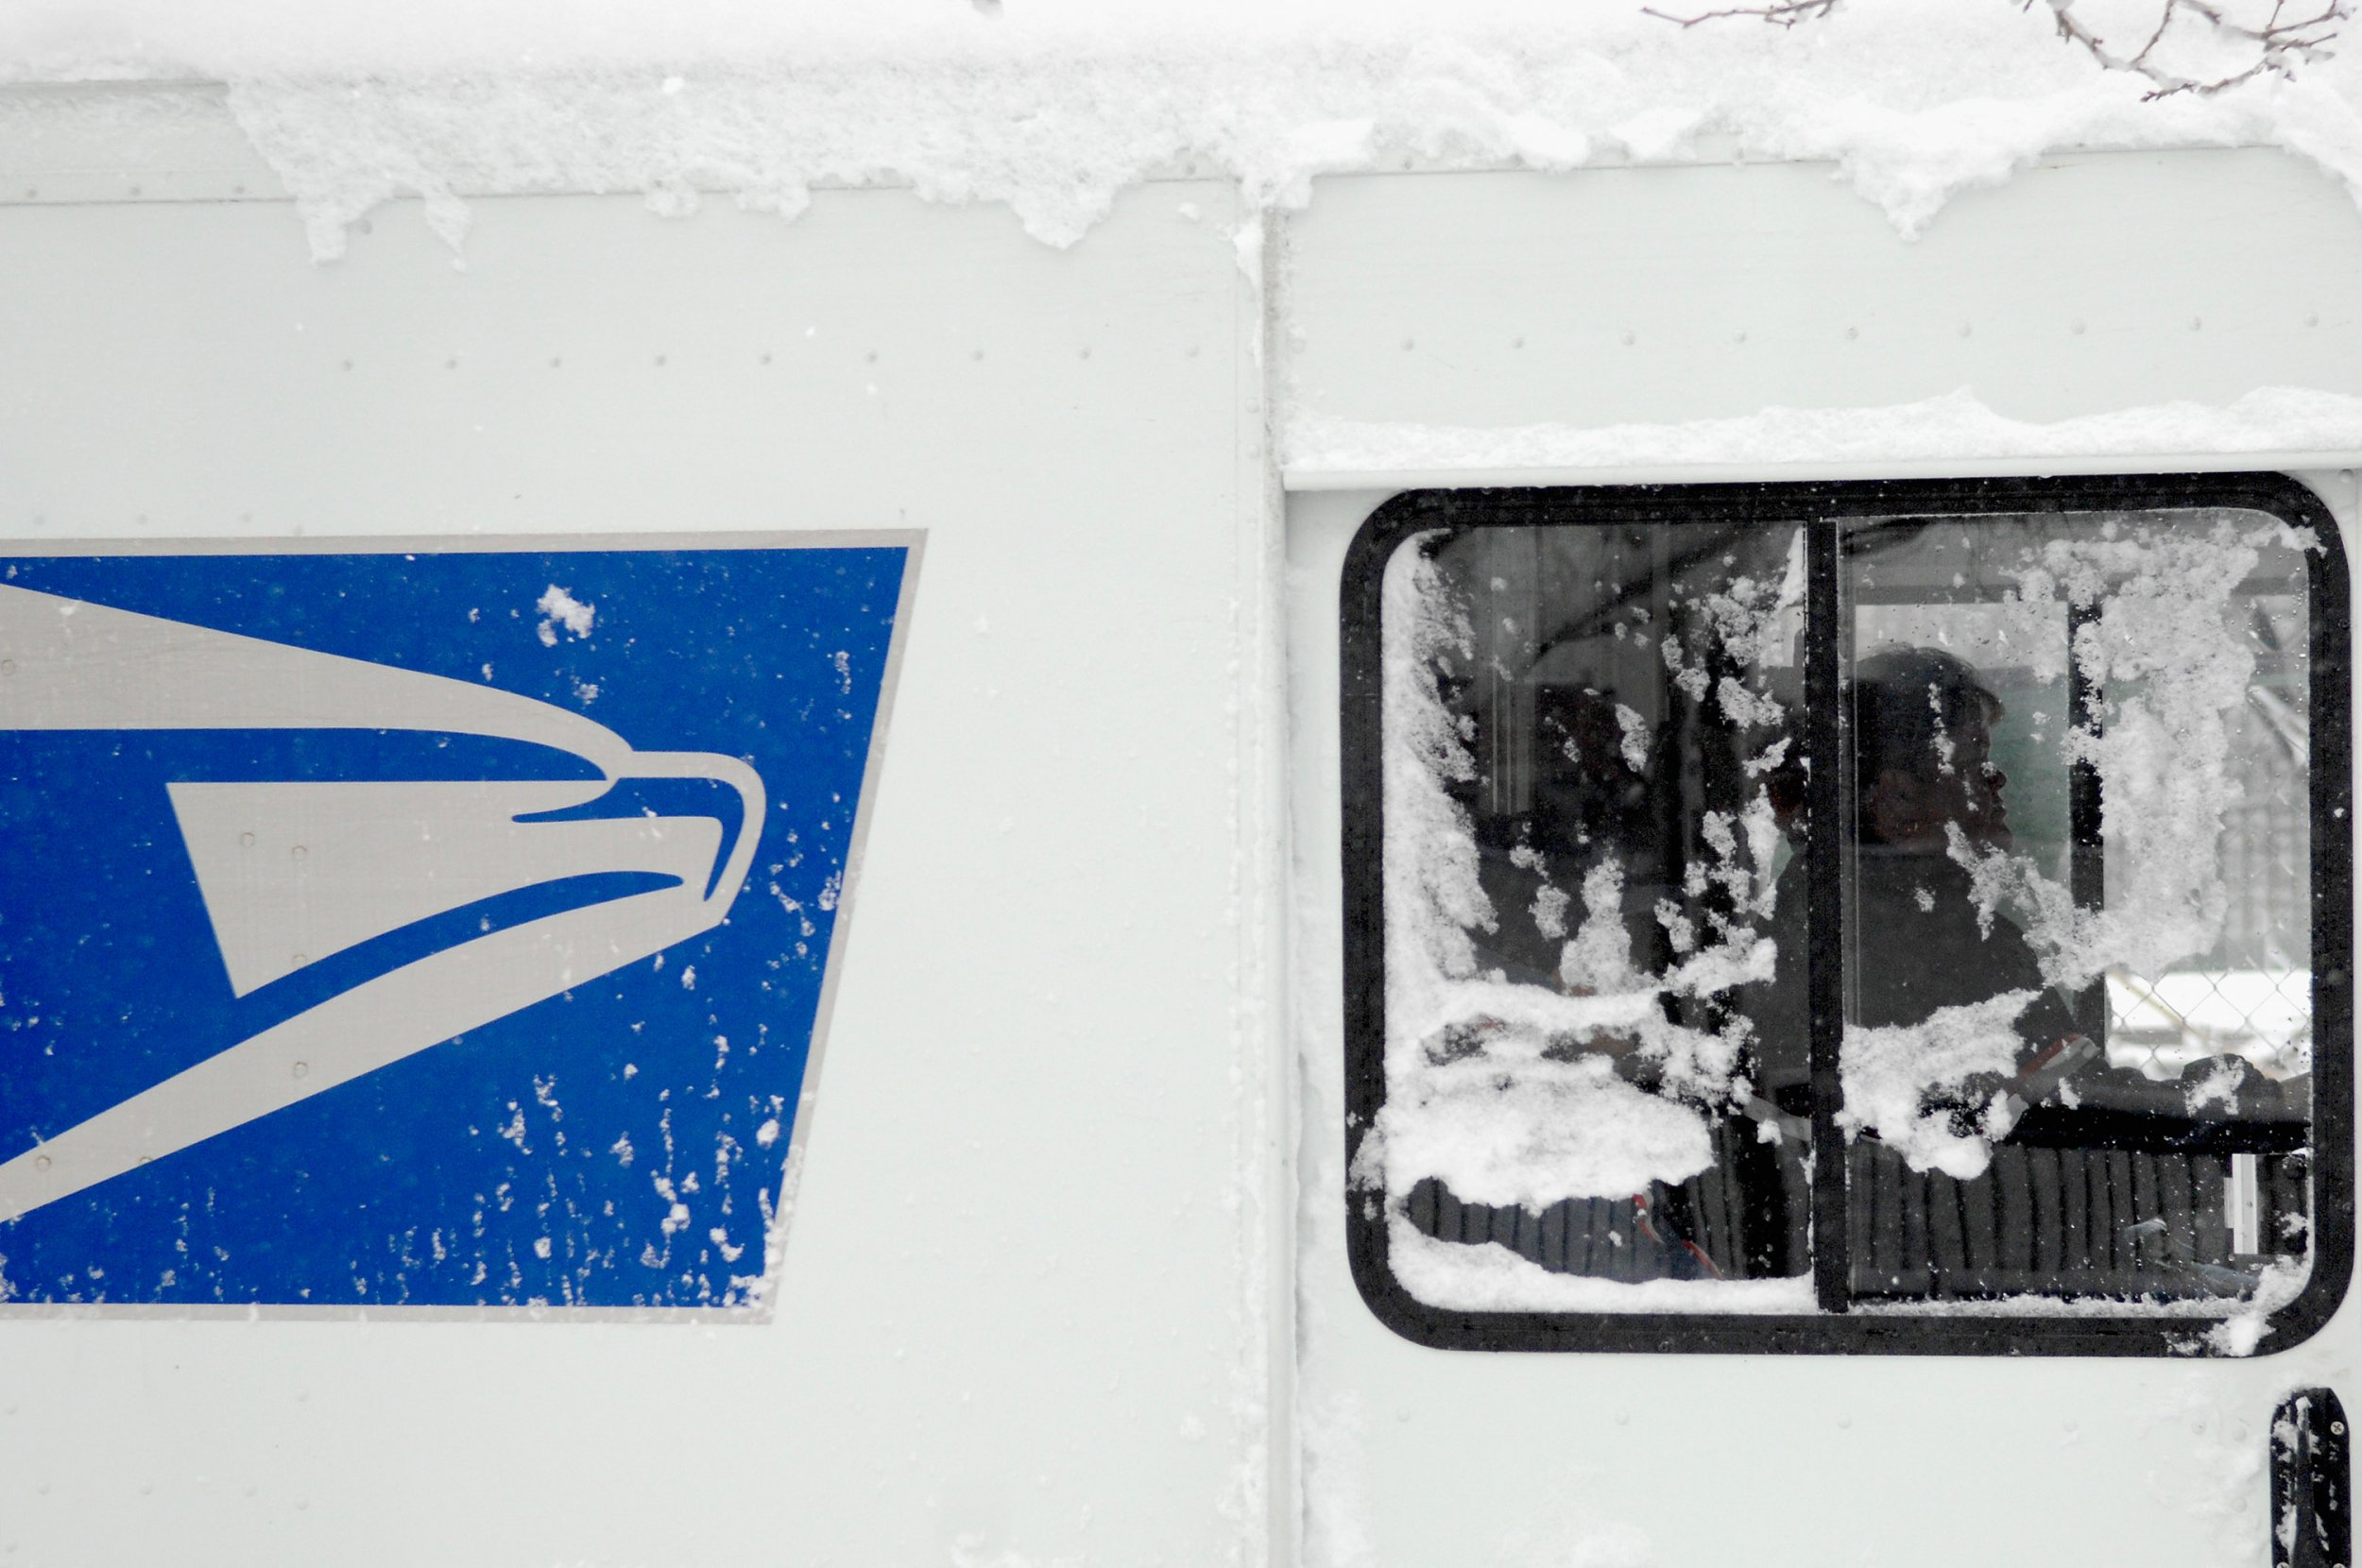 cold usps truck with snow